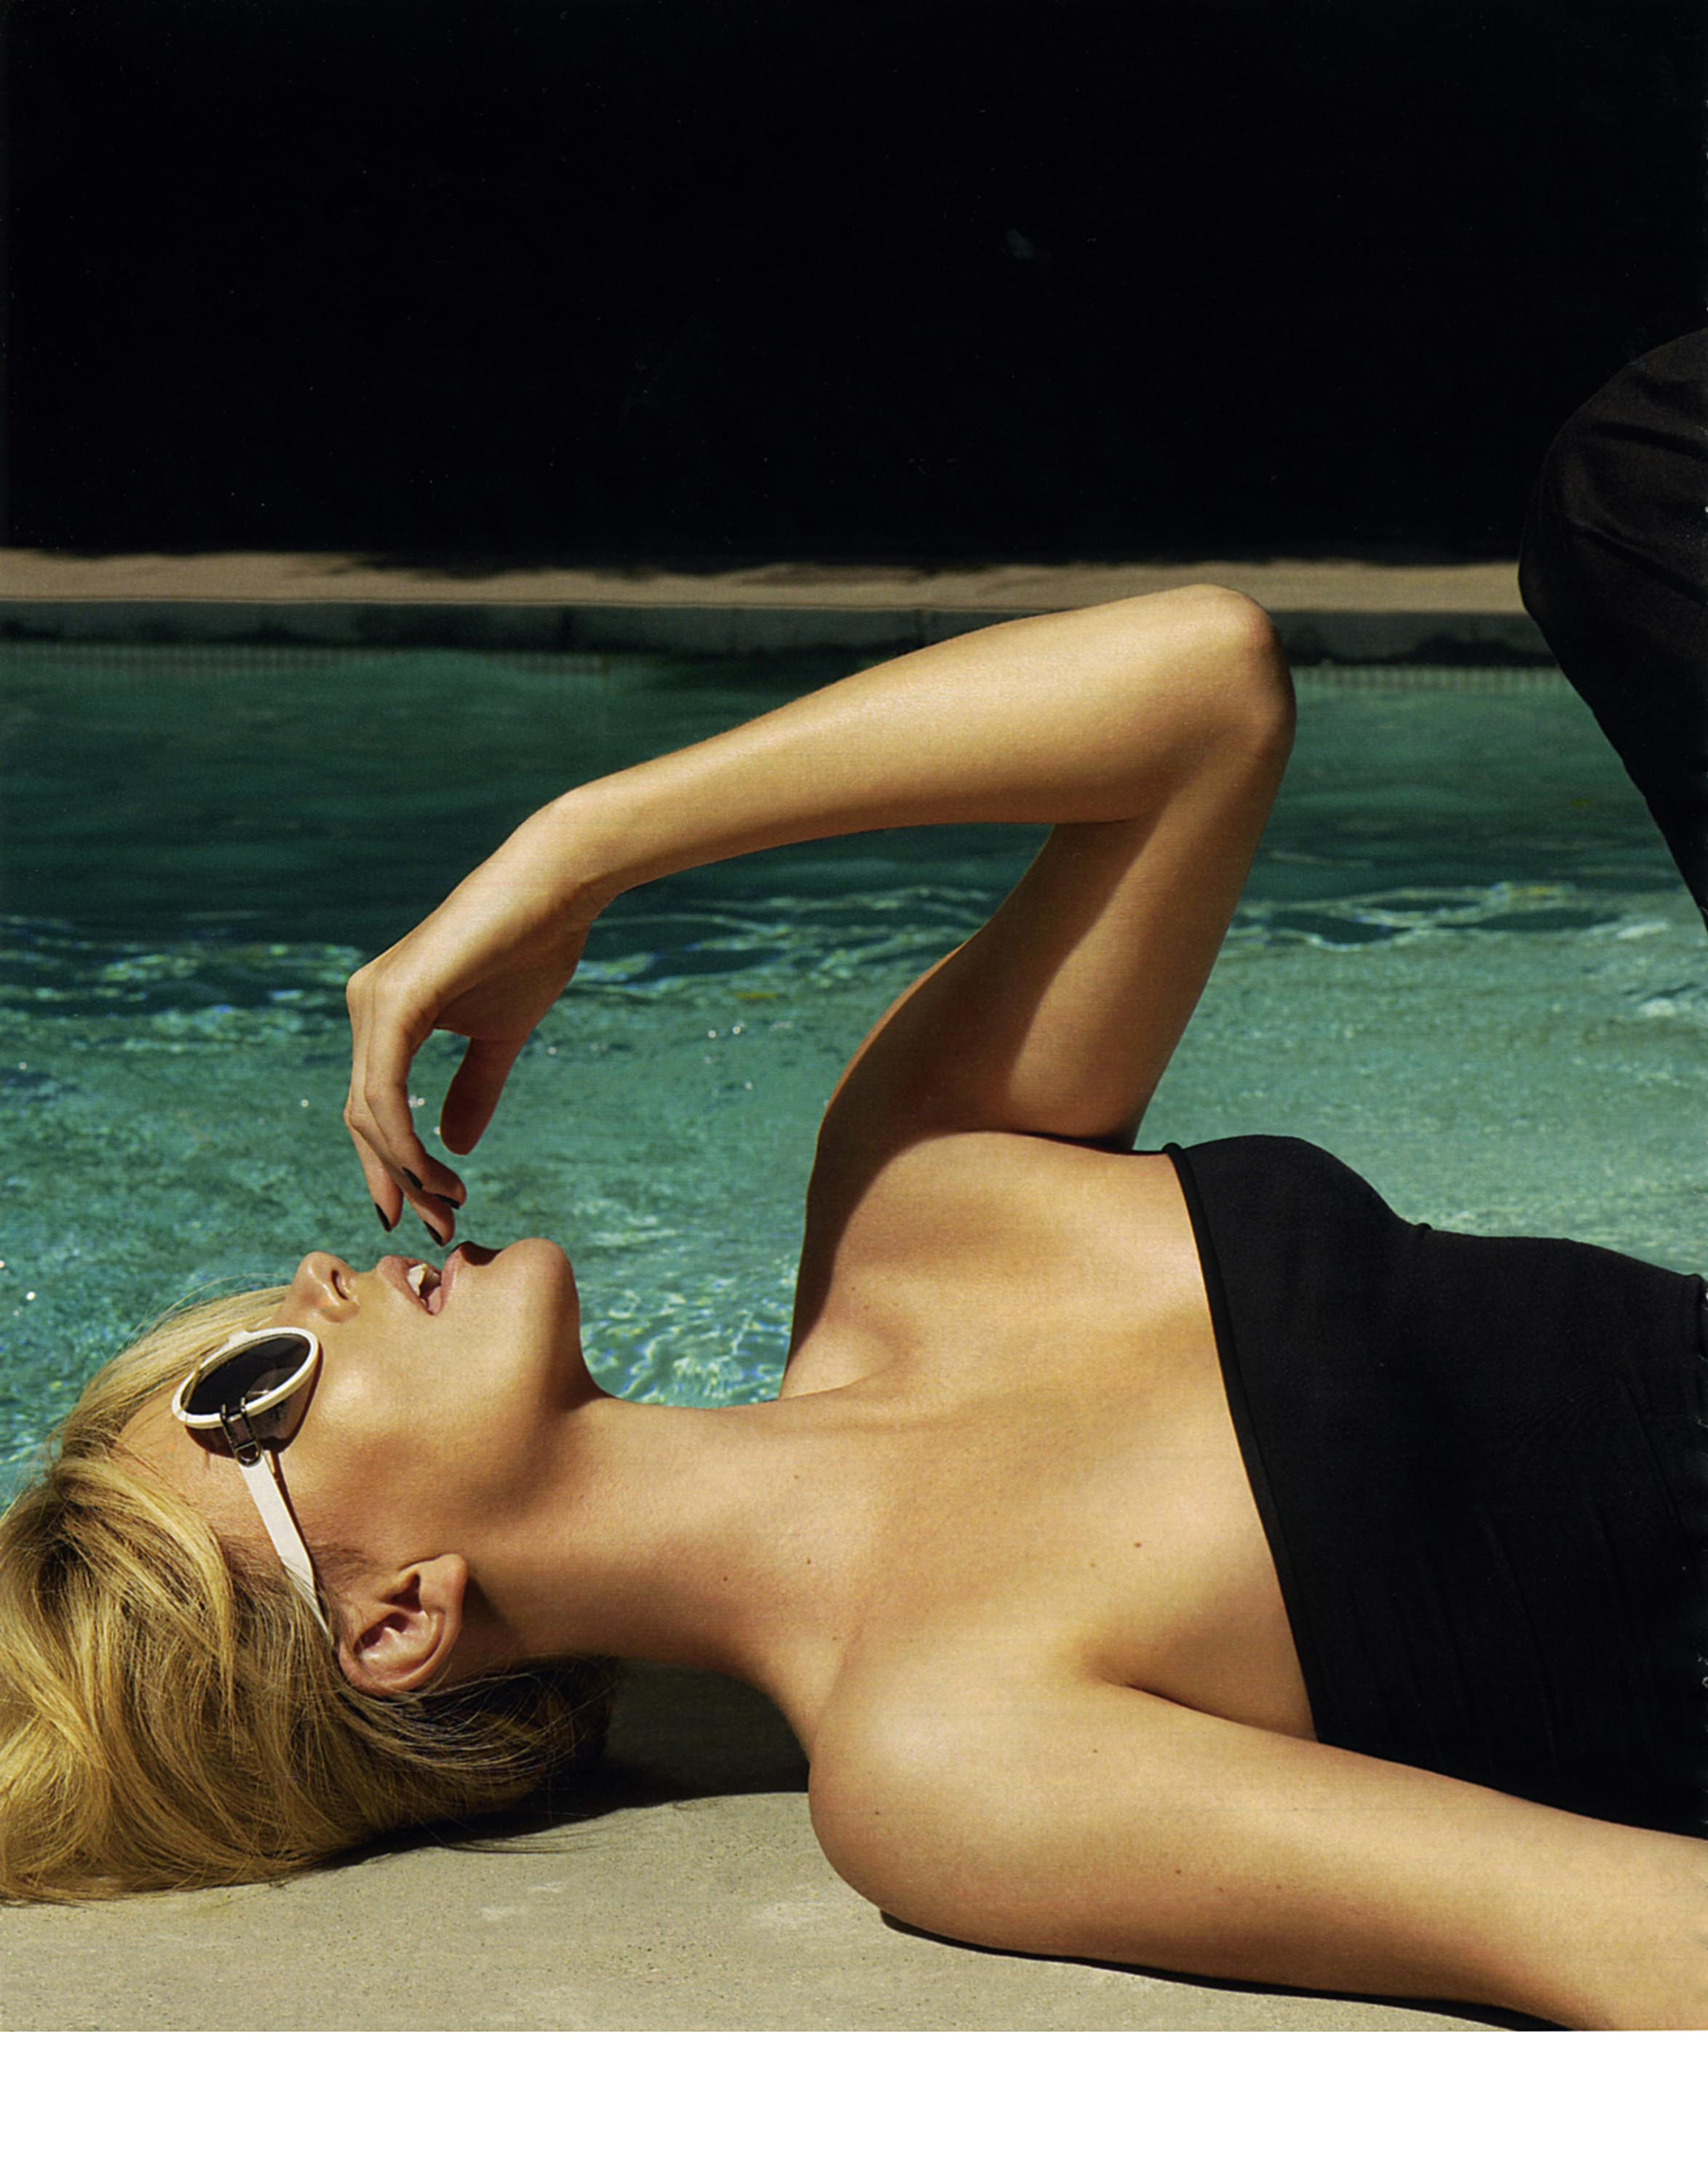 03291_Charlize_Theron_Marie_Claire-4_122_87lo.jpg